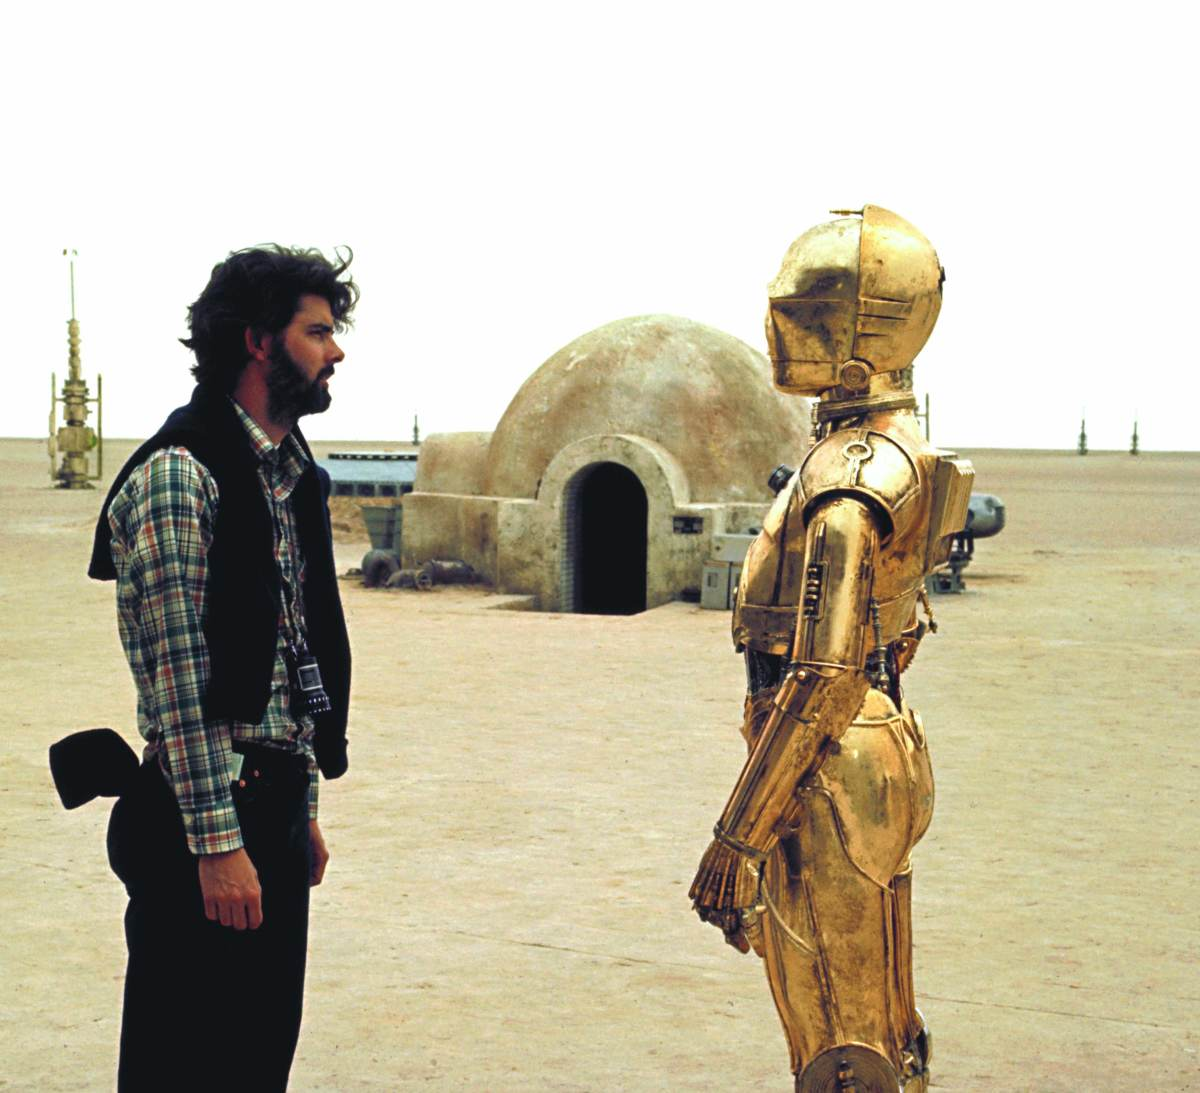 George Lucas with Anthony Daniels as C-3PO during the filming of Star Wars.